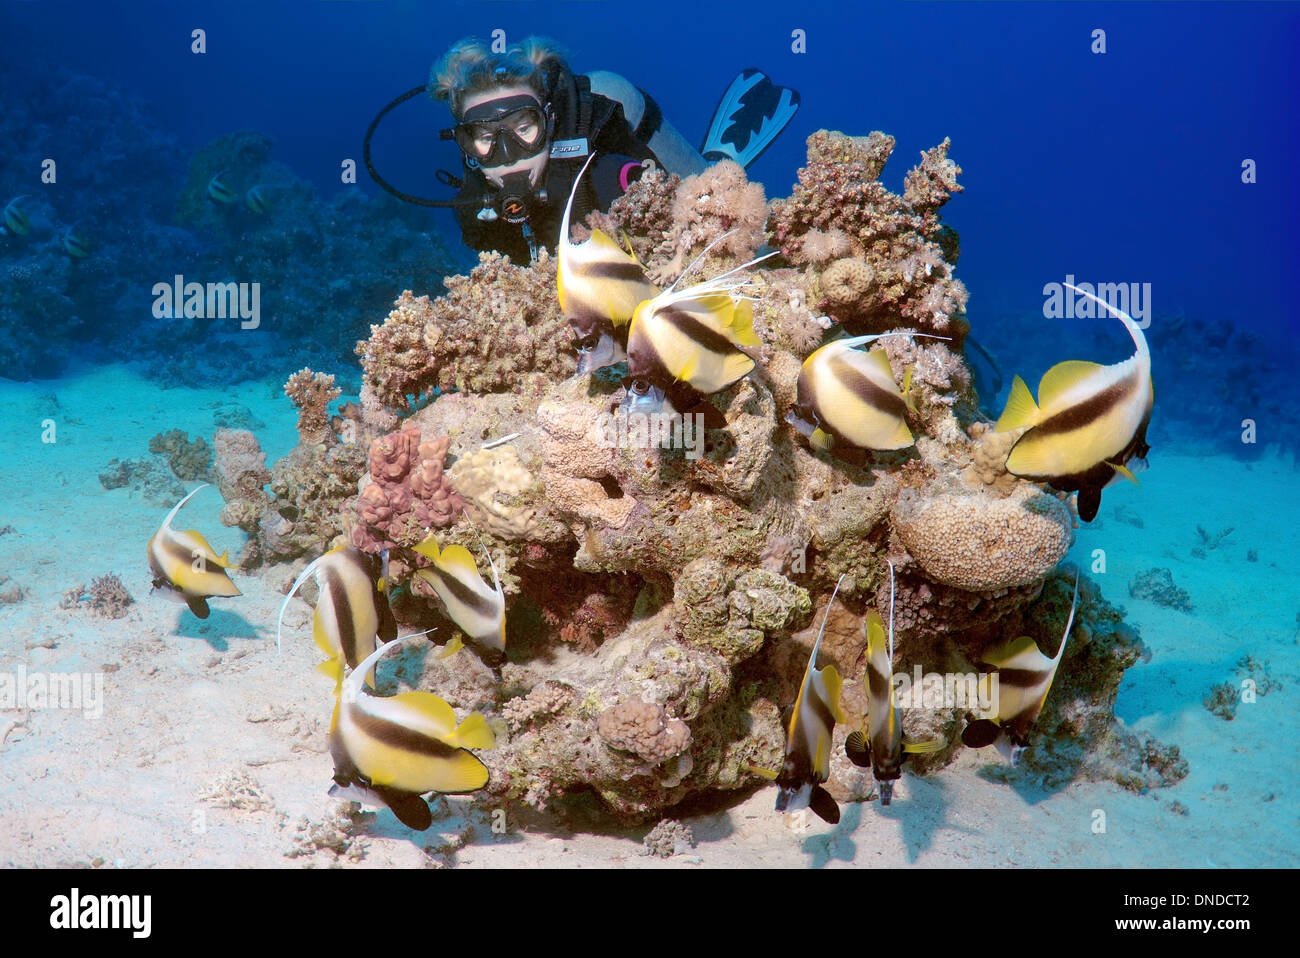 Diver looking at Pennant coralfish, longfin bannerfish or coachman (Heniochus acuminatus) Red sea, Egypt, Africa - Stock Image